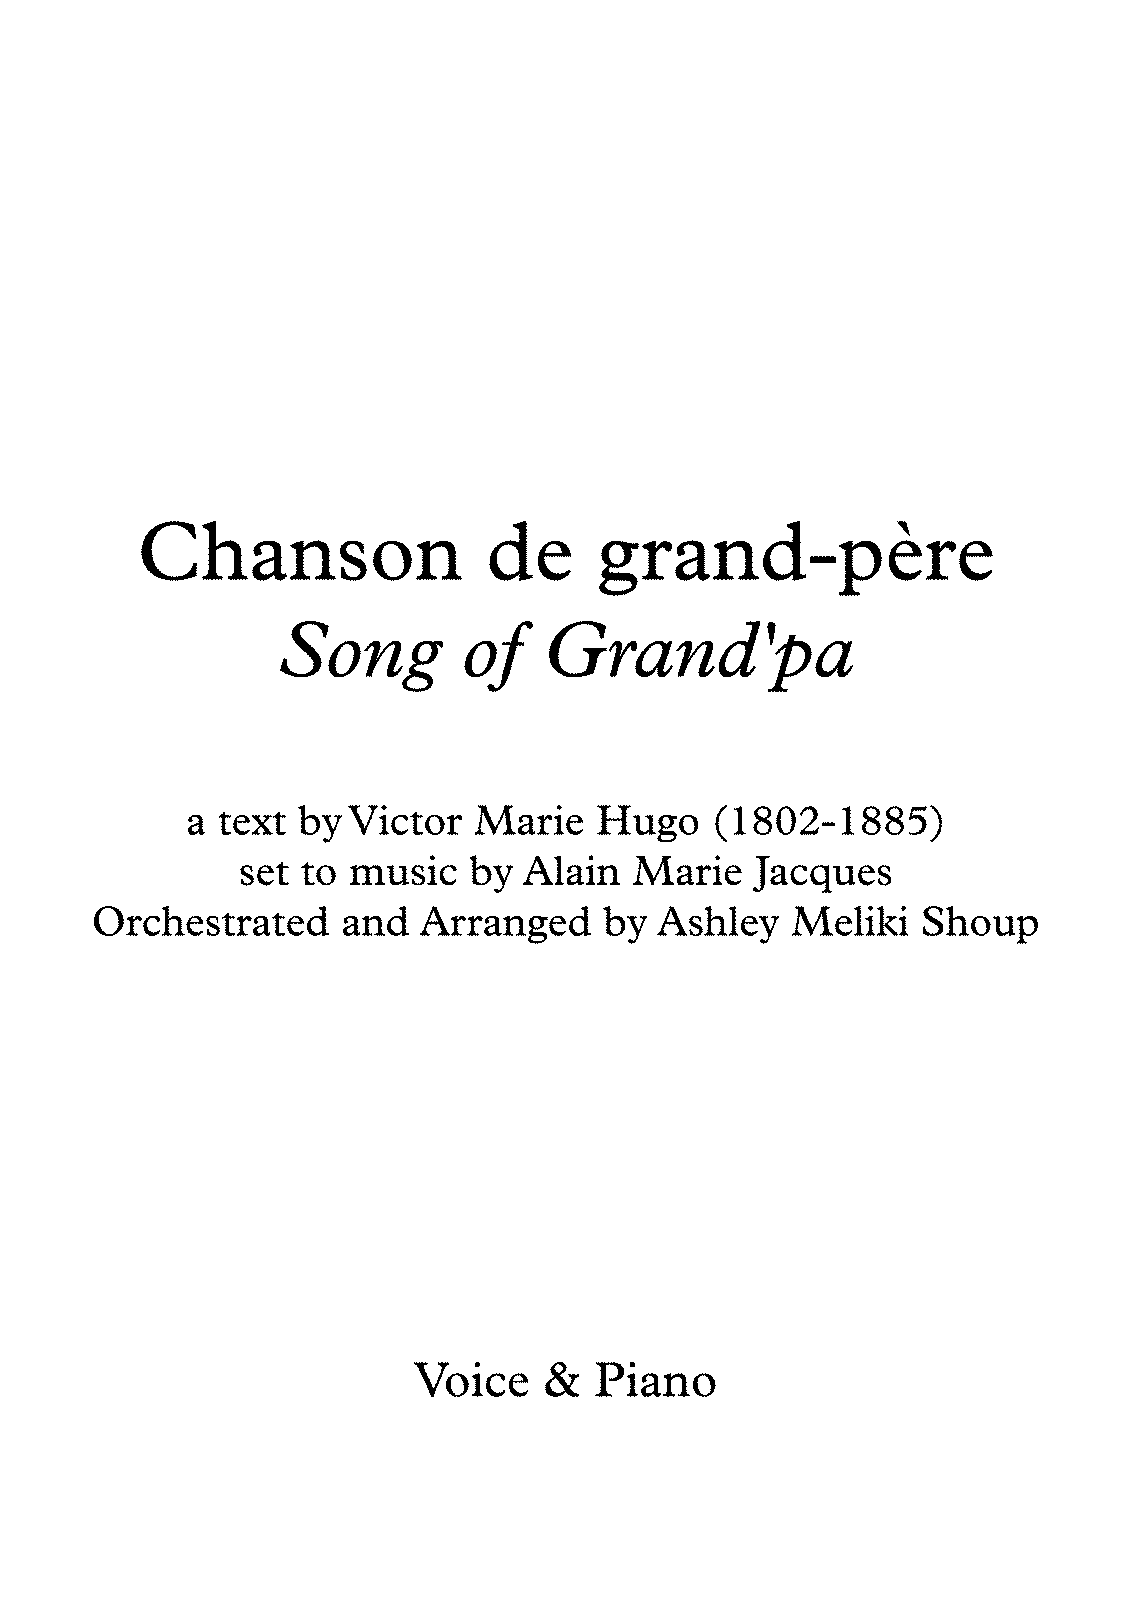 PMLP449244-Chanson de grand-père completed - Full Score.pdf